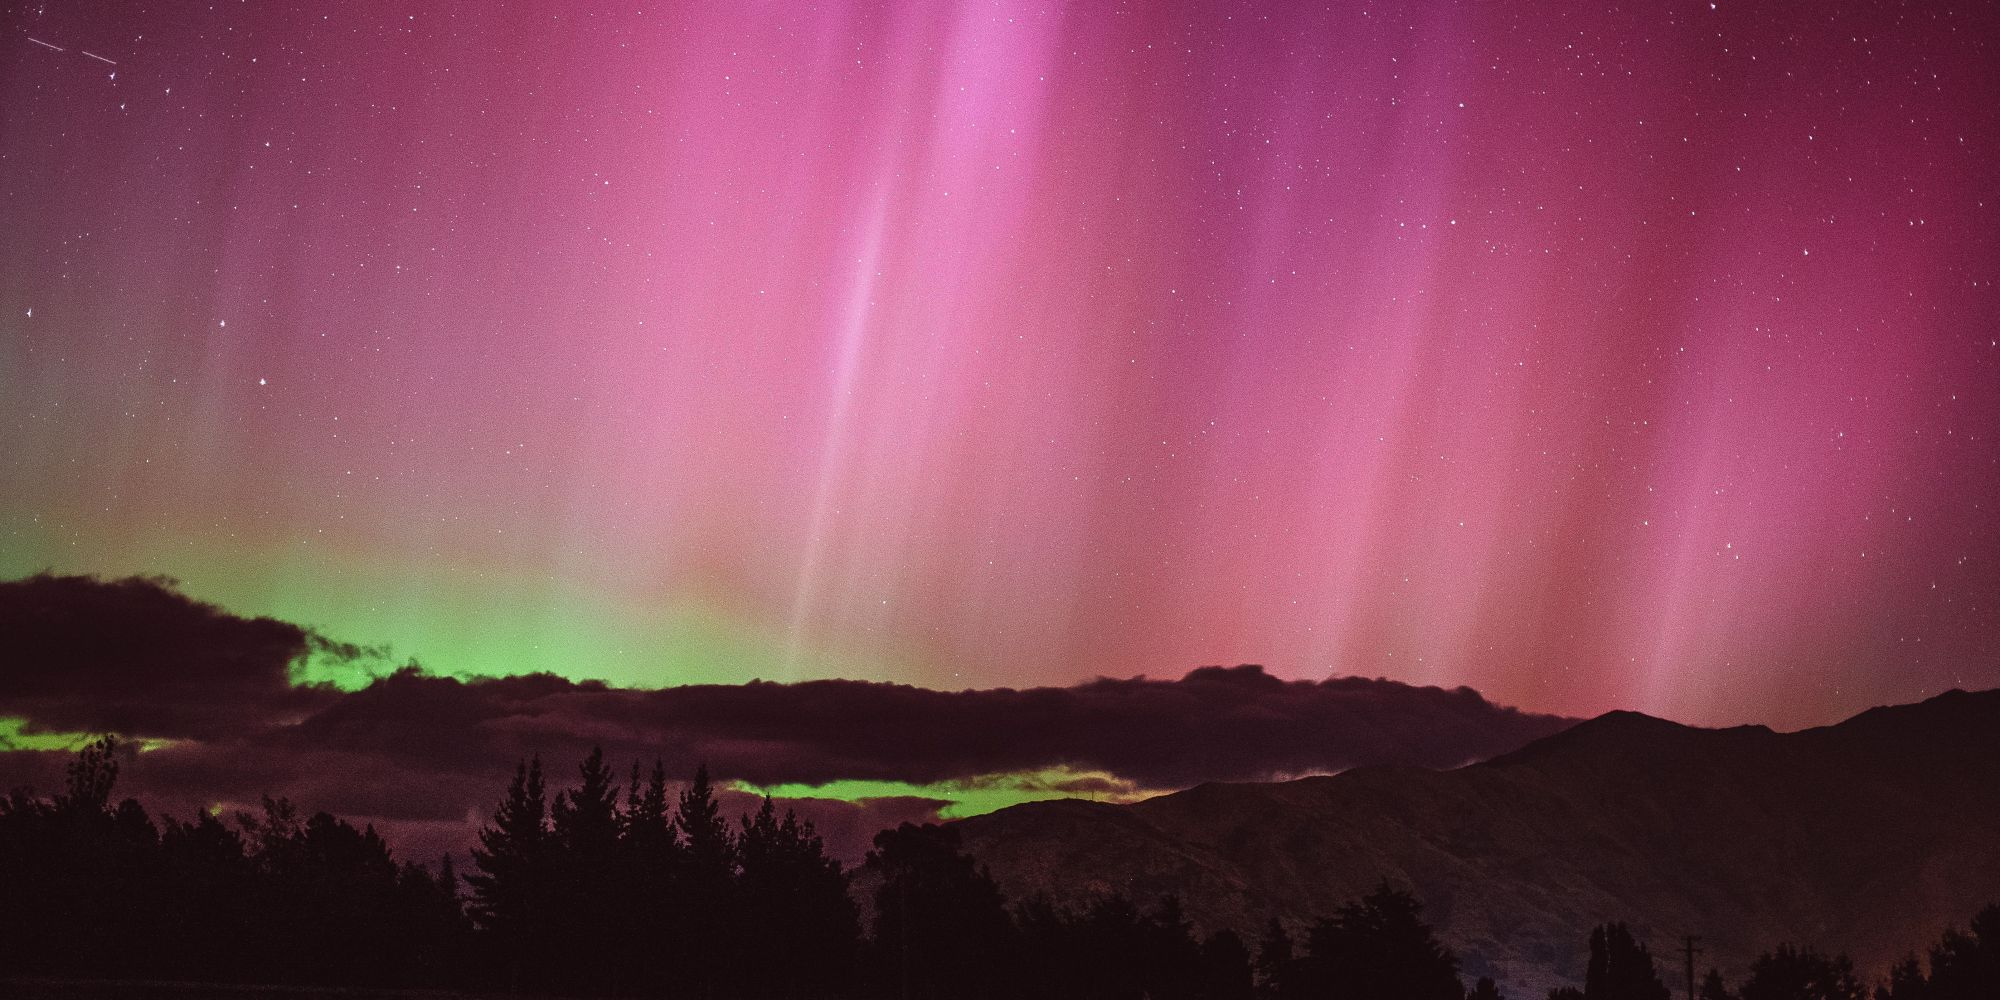 New Zealand Facebook: New Zealand's National Parks Captured In Stunning Photo